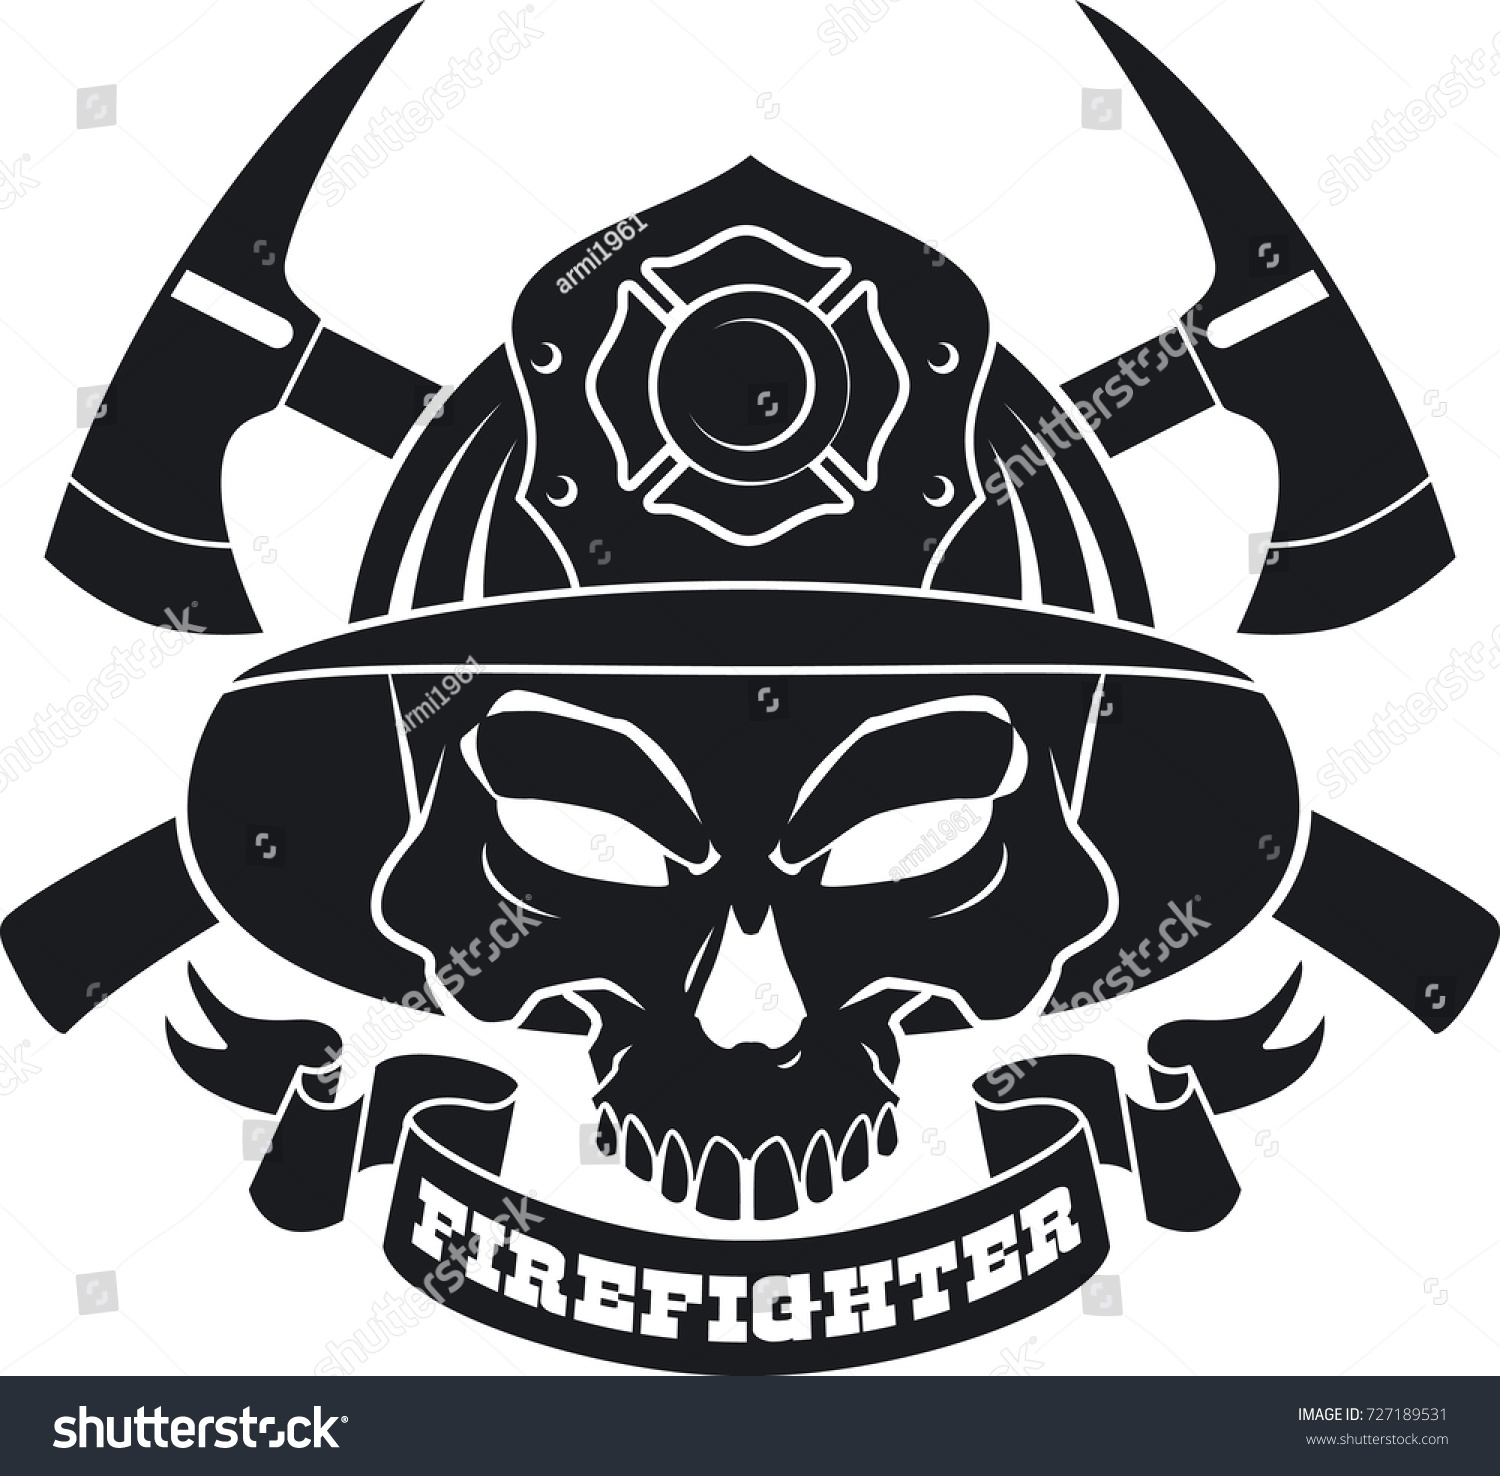 Boat Forum in addition Skull Wearing Firemans Helmet Crossed Axes 727189531 besides Bai Barcode Decals furthermore Osha Floormarking furthermore Adts Pulse Voice App Brings Voice Biometrics Into The Home Security And Automation Mix. on fire alarm decals